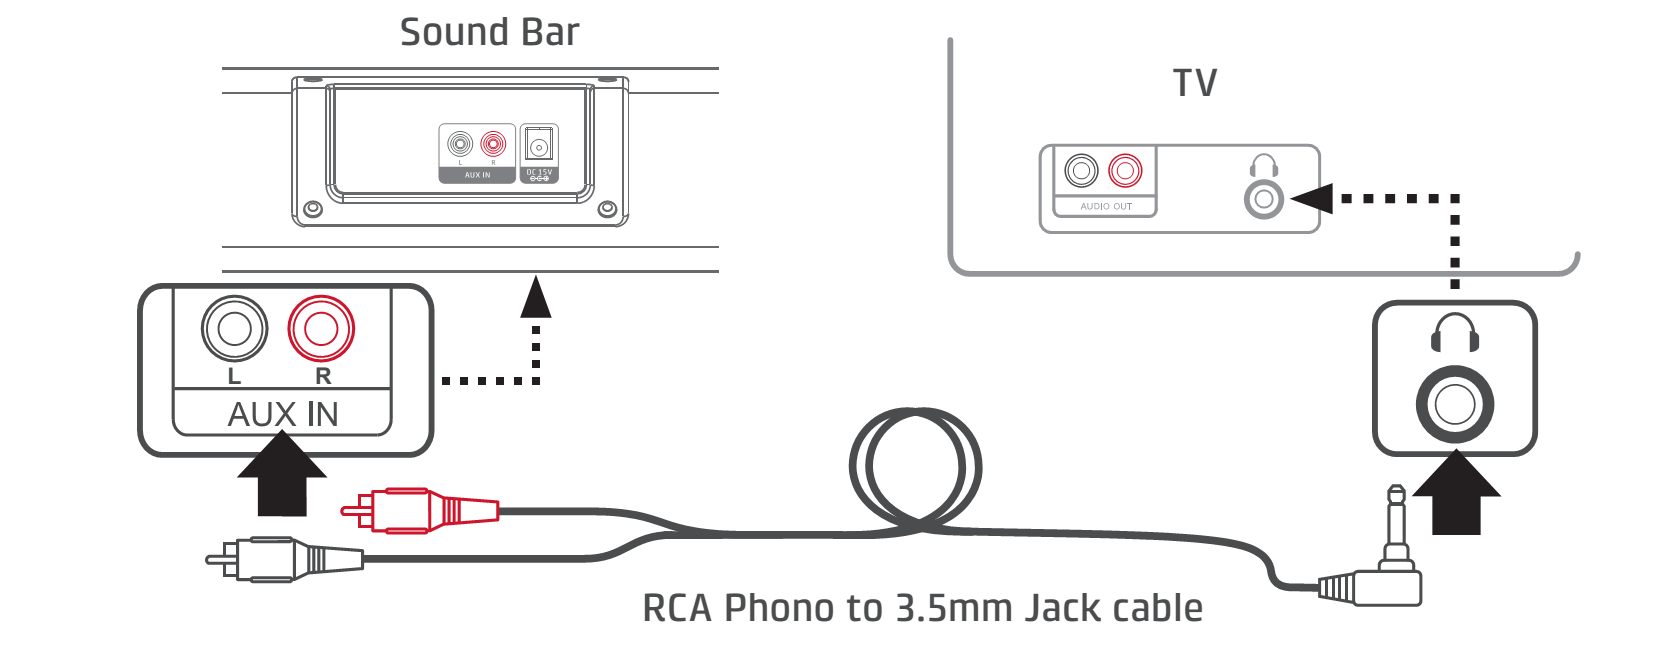 Gdsbt30cs How To Connect A Tv Support Centre Headset Plug Wiring Diagram Of Rca If Your Does Not Have An Analogue Audio Out Use The Headphone Socket